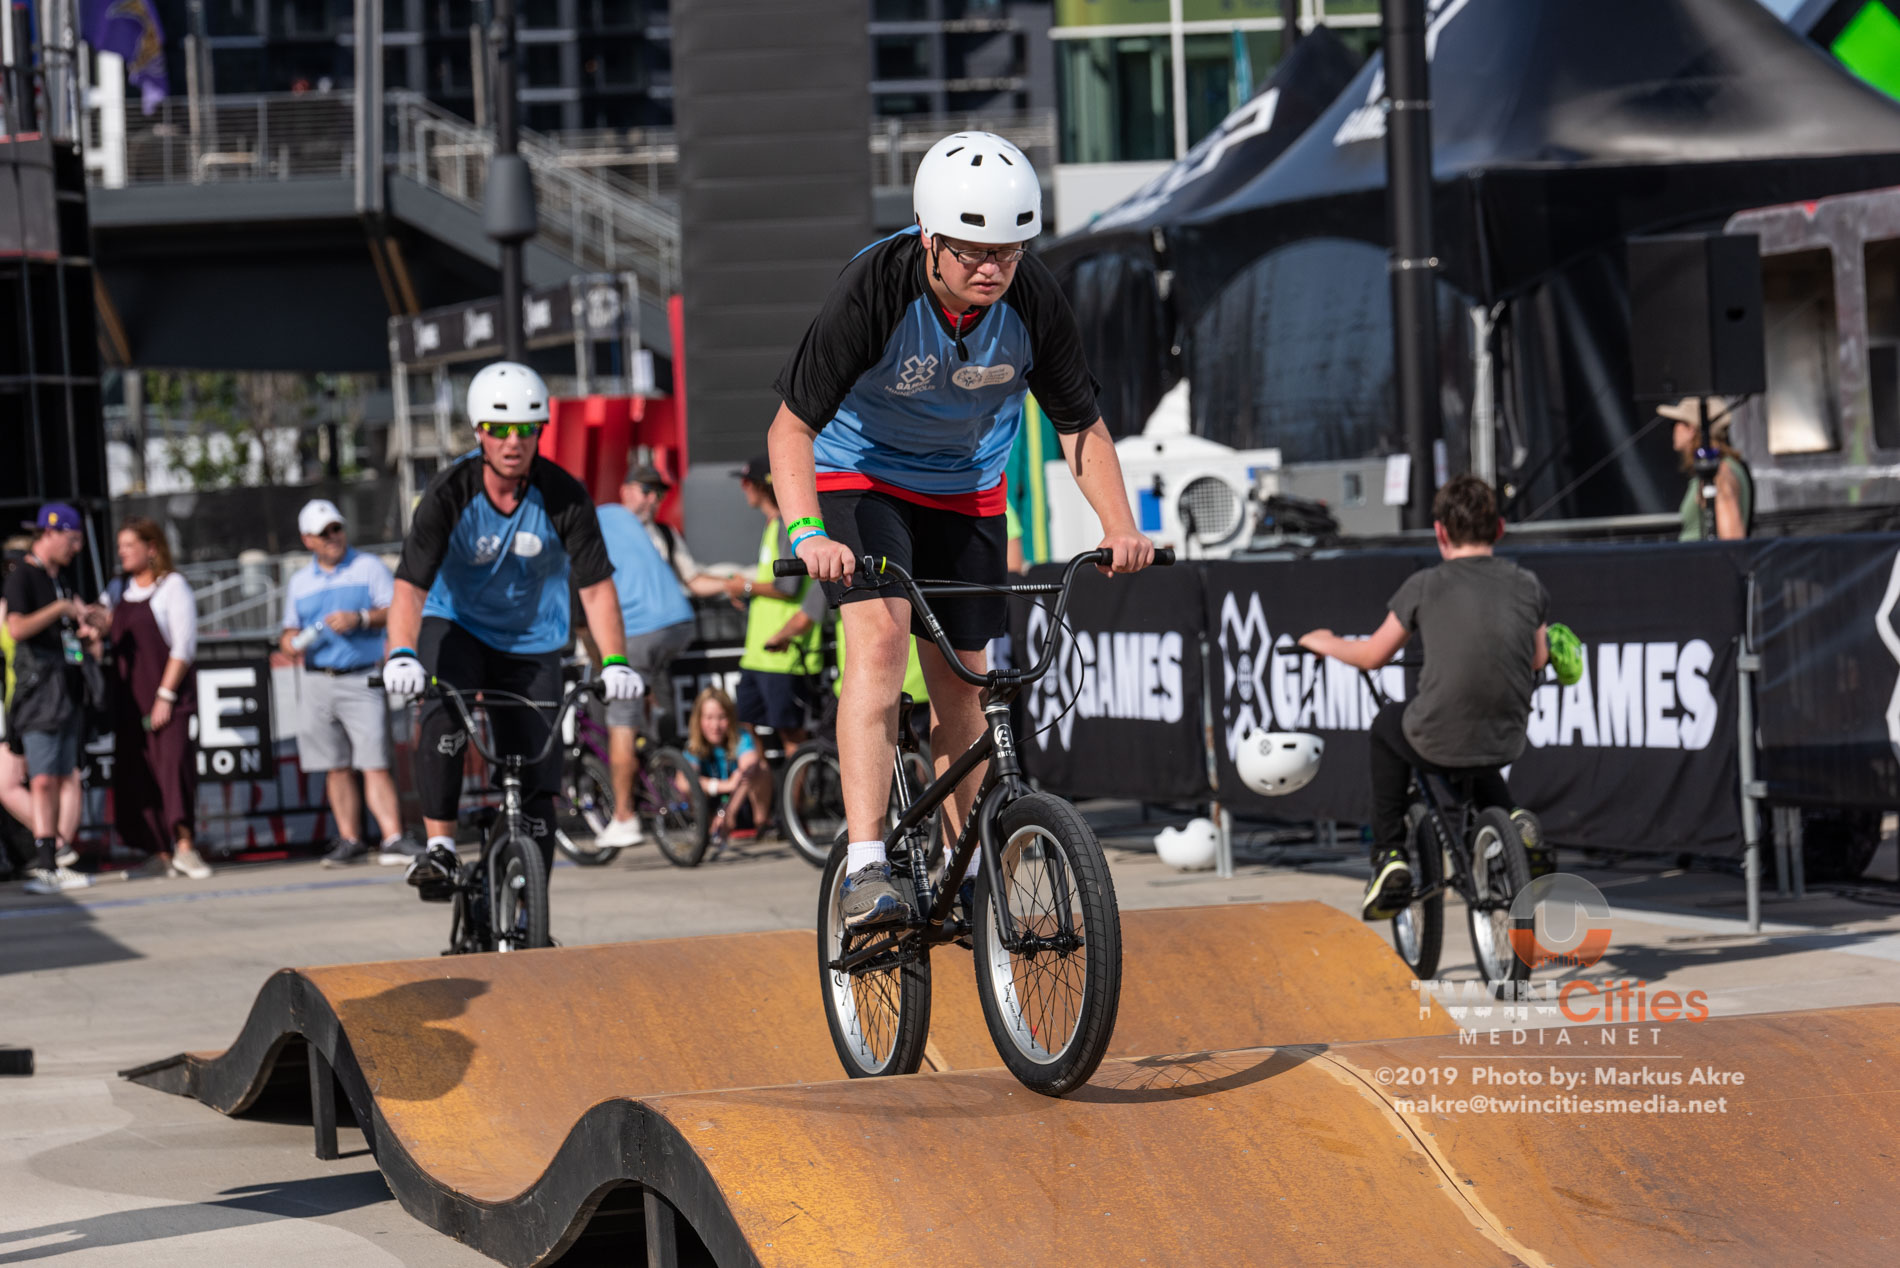 2019-X-Games-Day-1-Special-Olympics-Unified-BMX-3